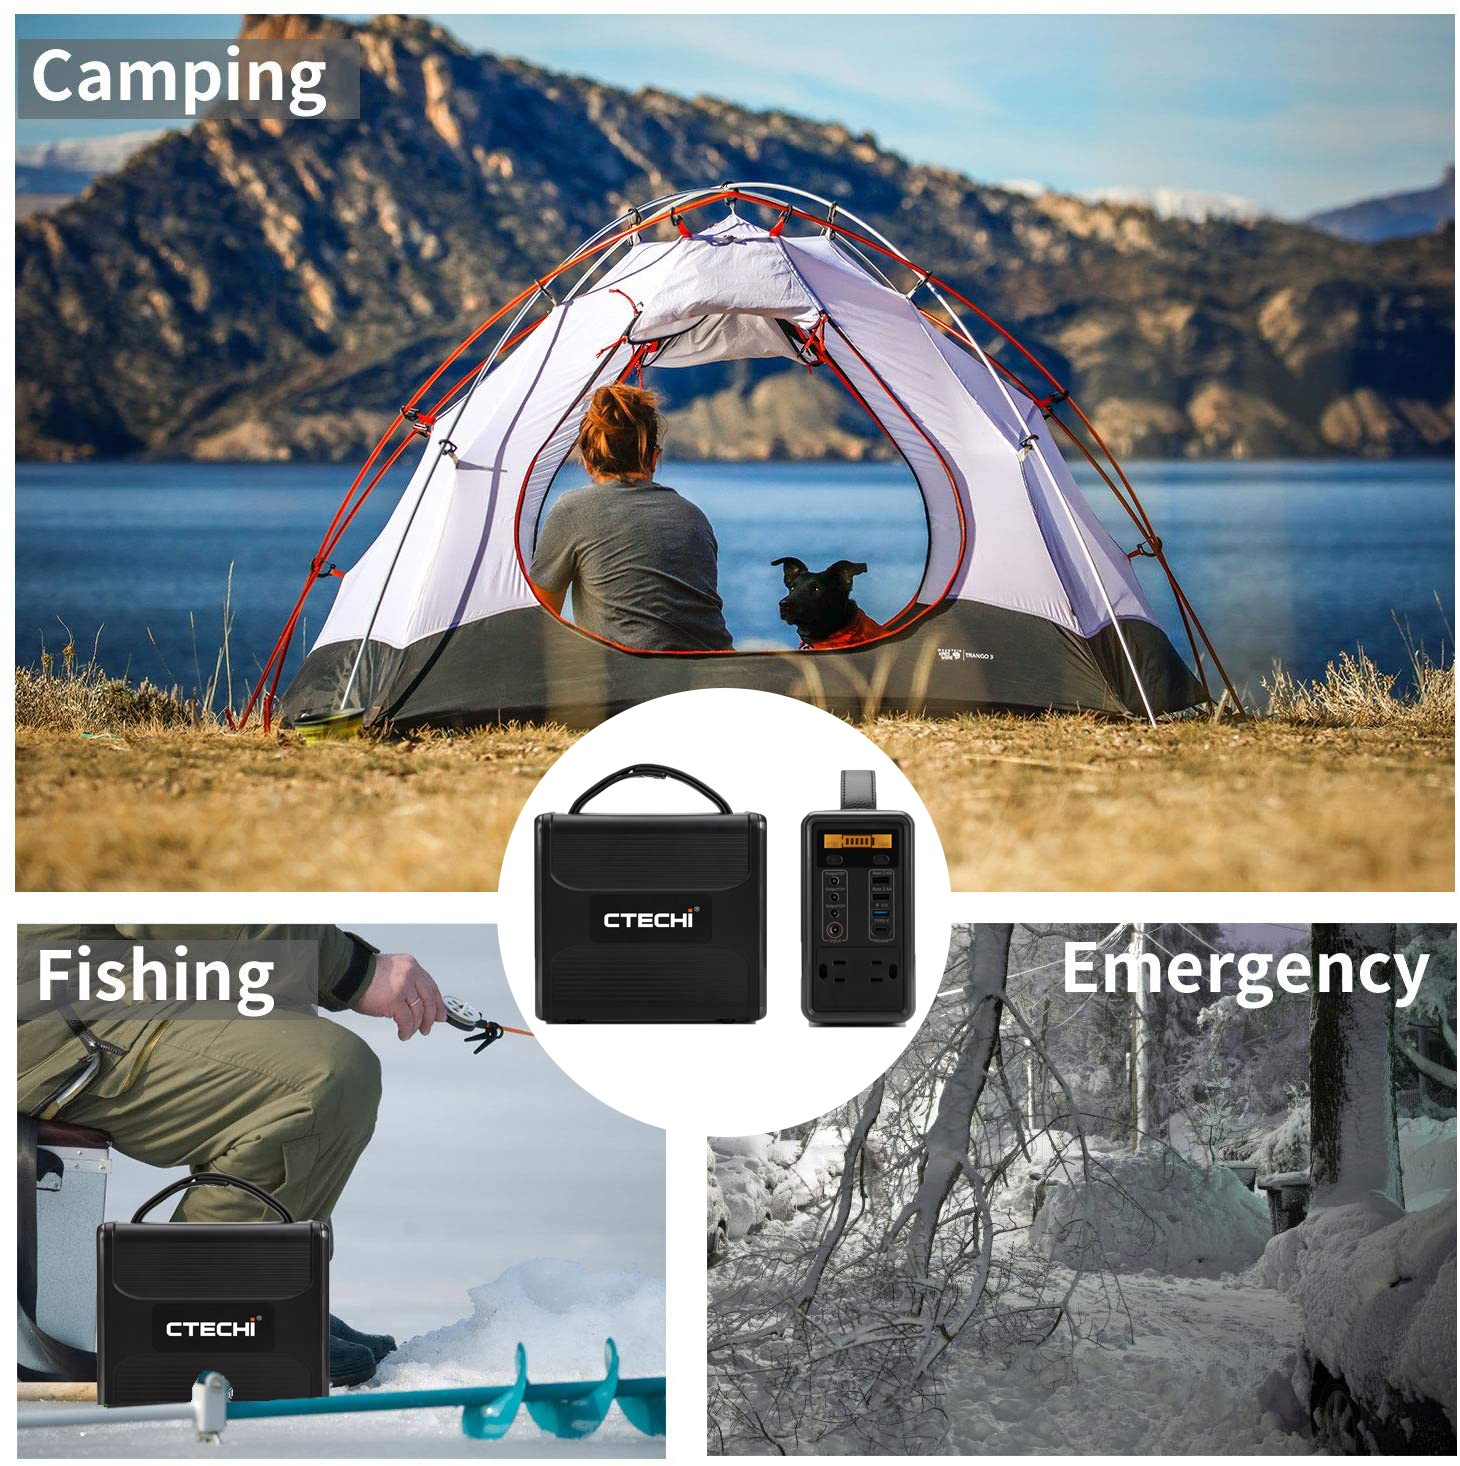 CTECHi 1500w power station customized for camping-7